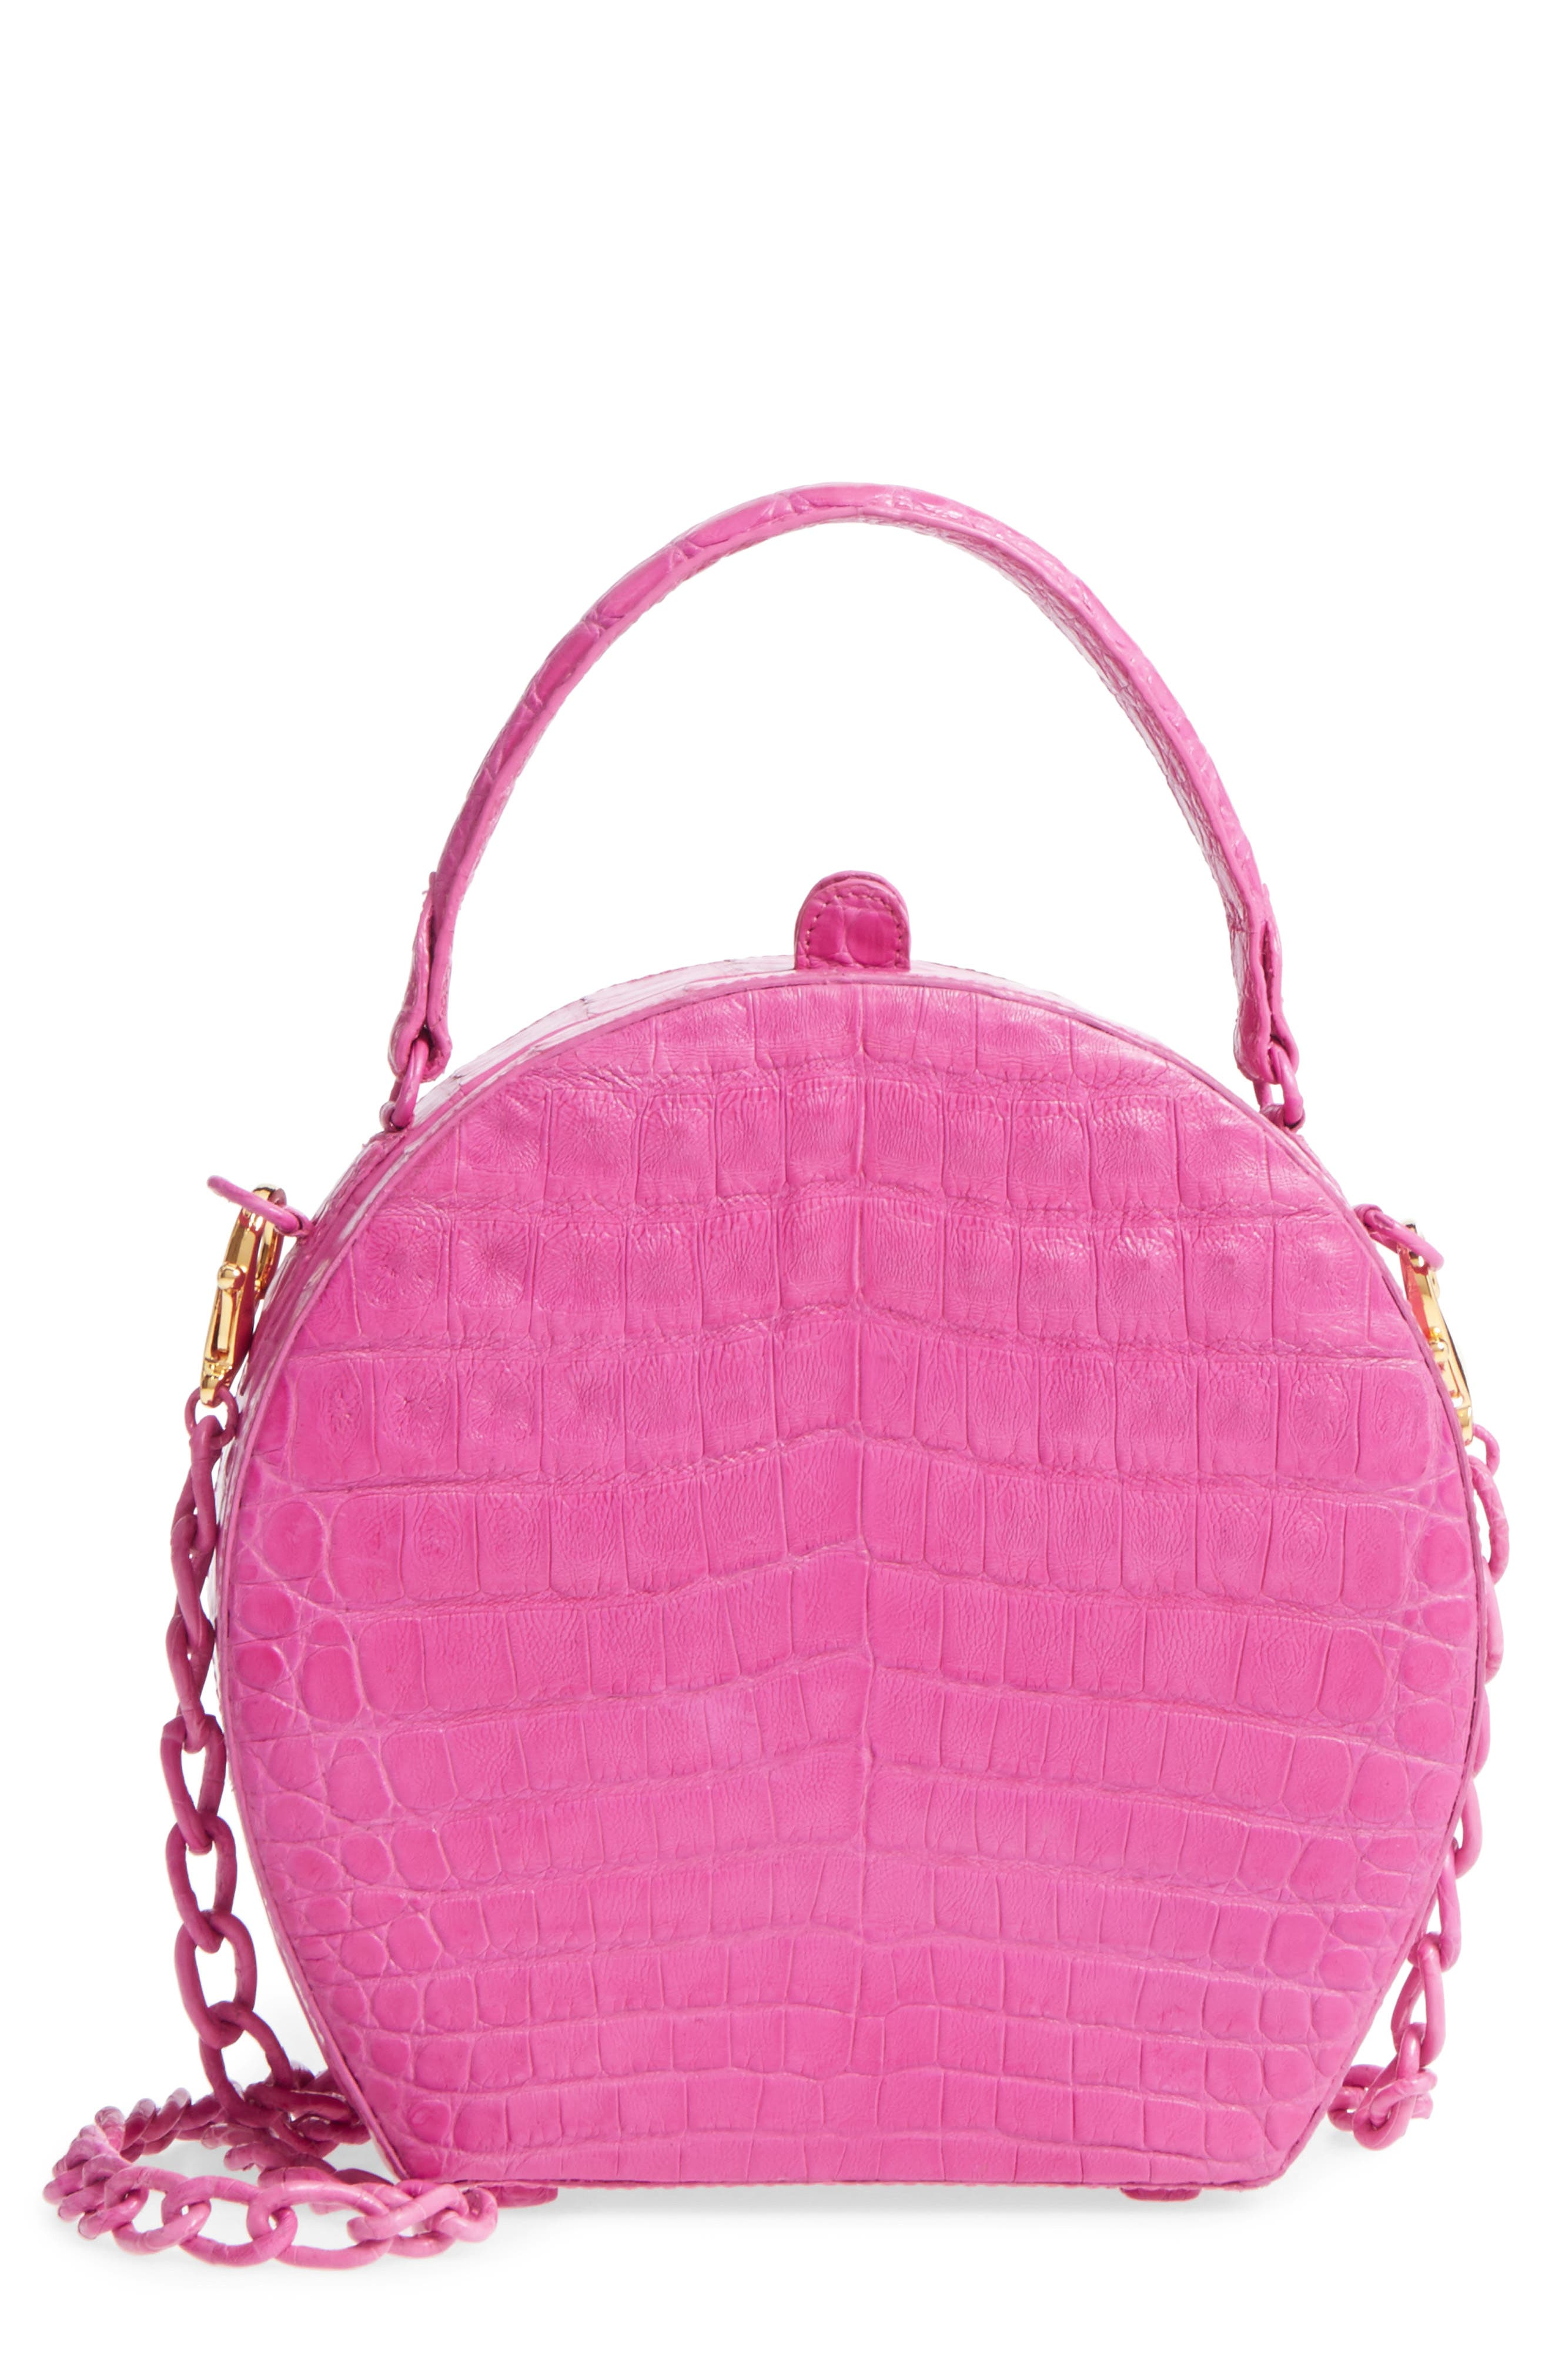 NANCY GONZALEZ, Genuine Crocodile Circle Bag, Main thumbnail 1, color, 657